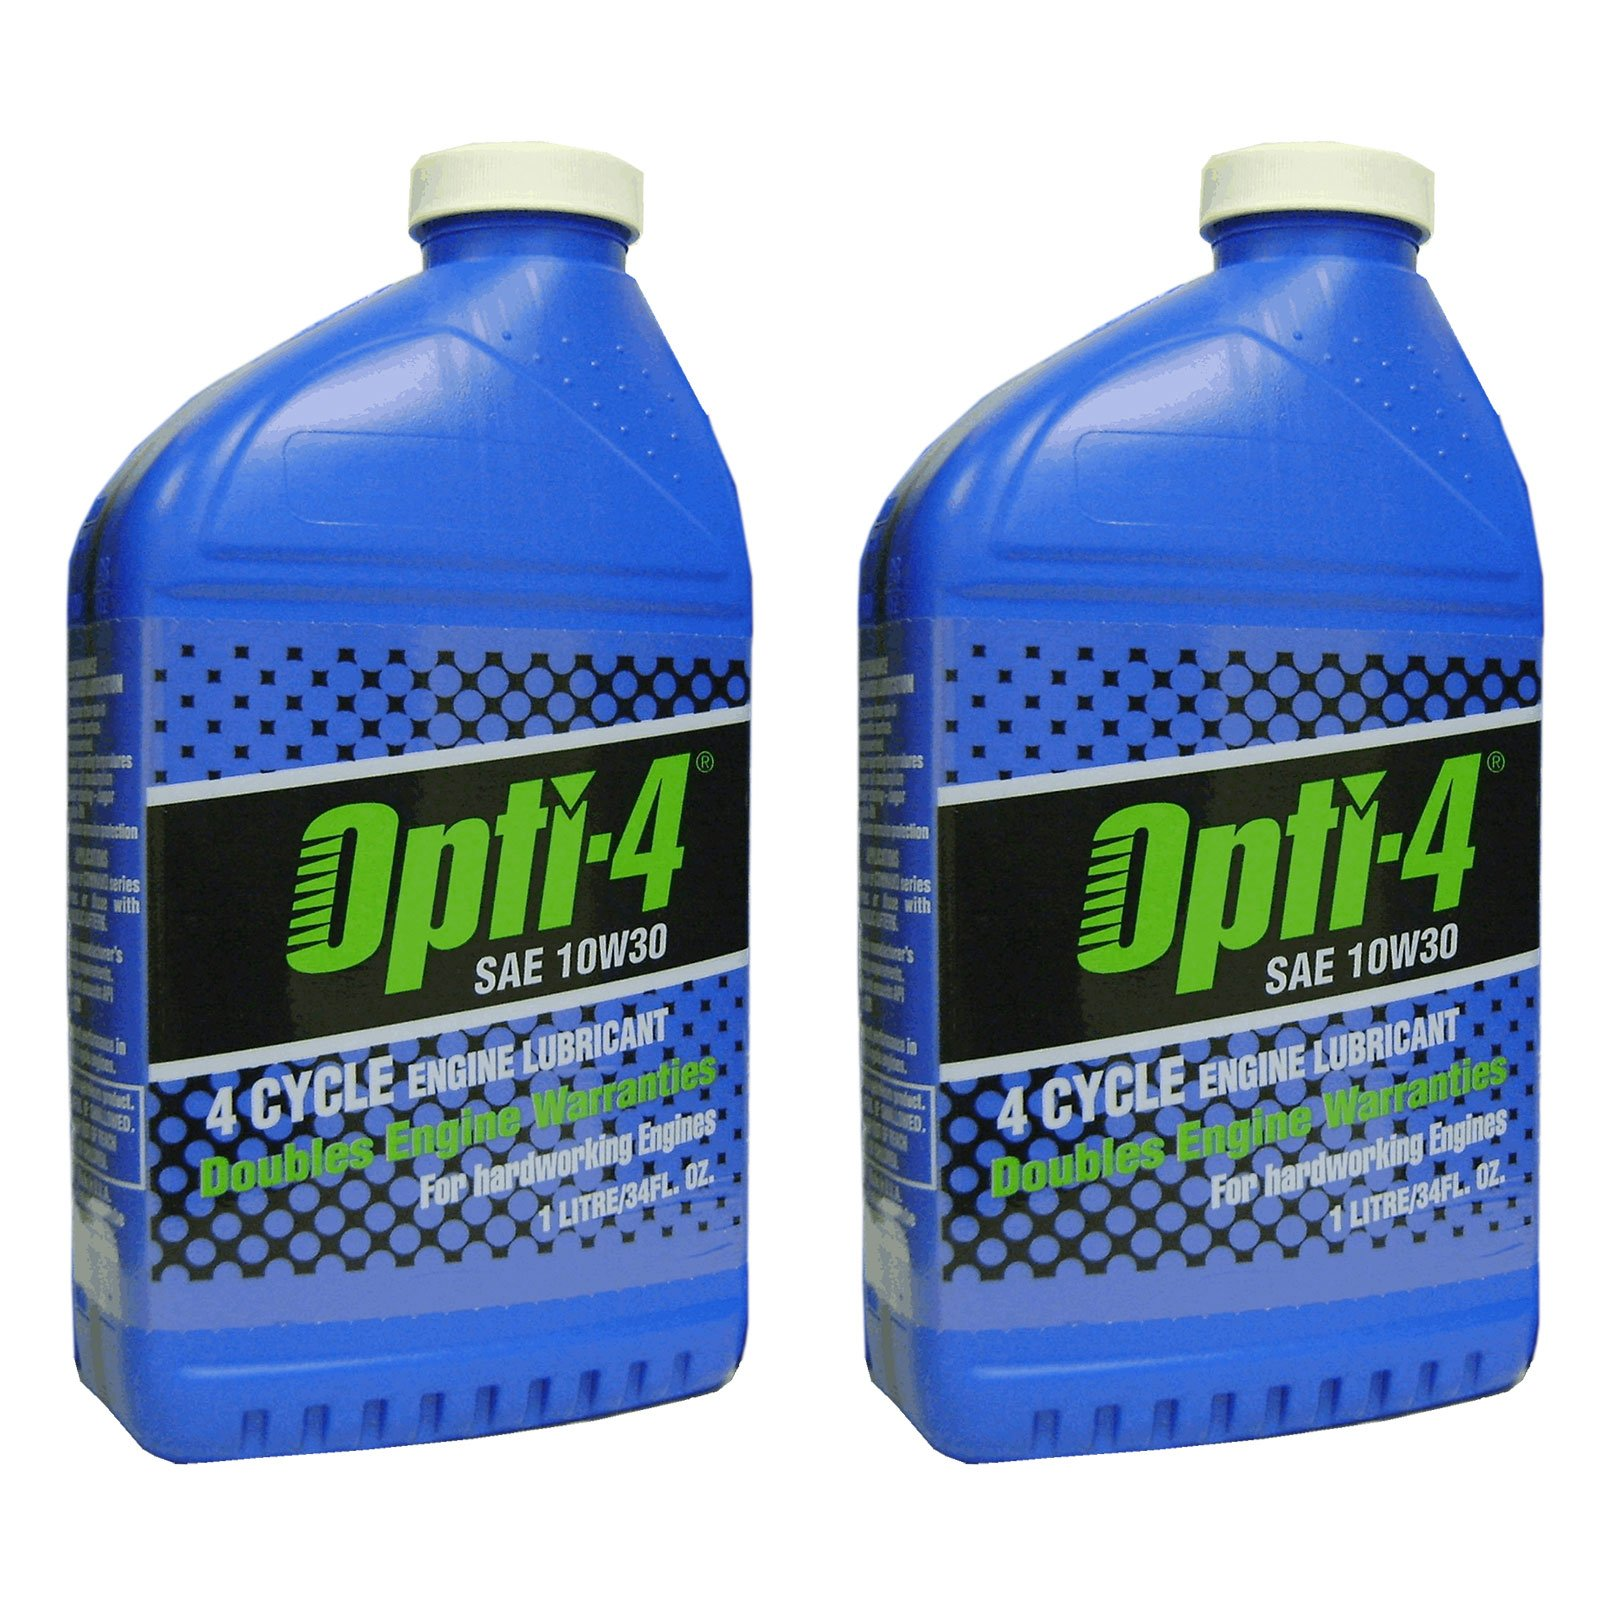 Opti-4 43121 SAE 10W30 34Oz 4-Cycle Engine Lubricant for Engines to 31hp, 2-Pack by Opti-2